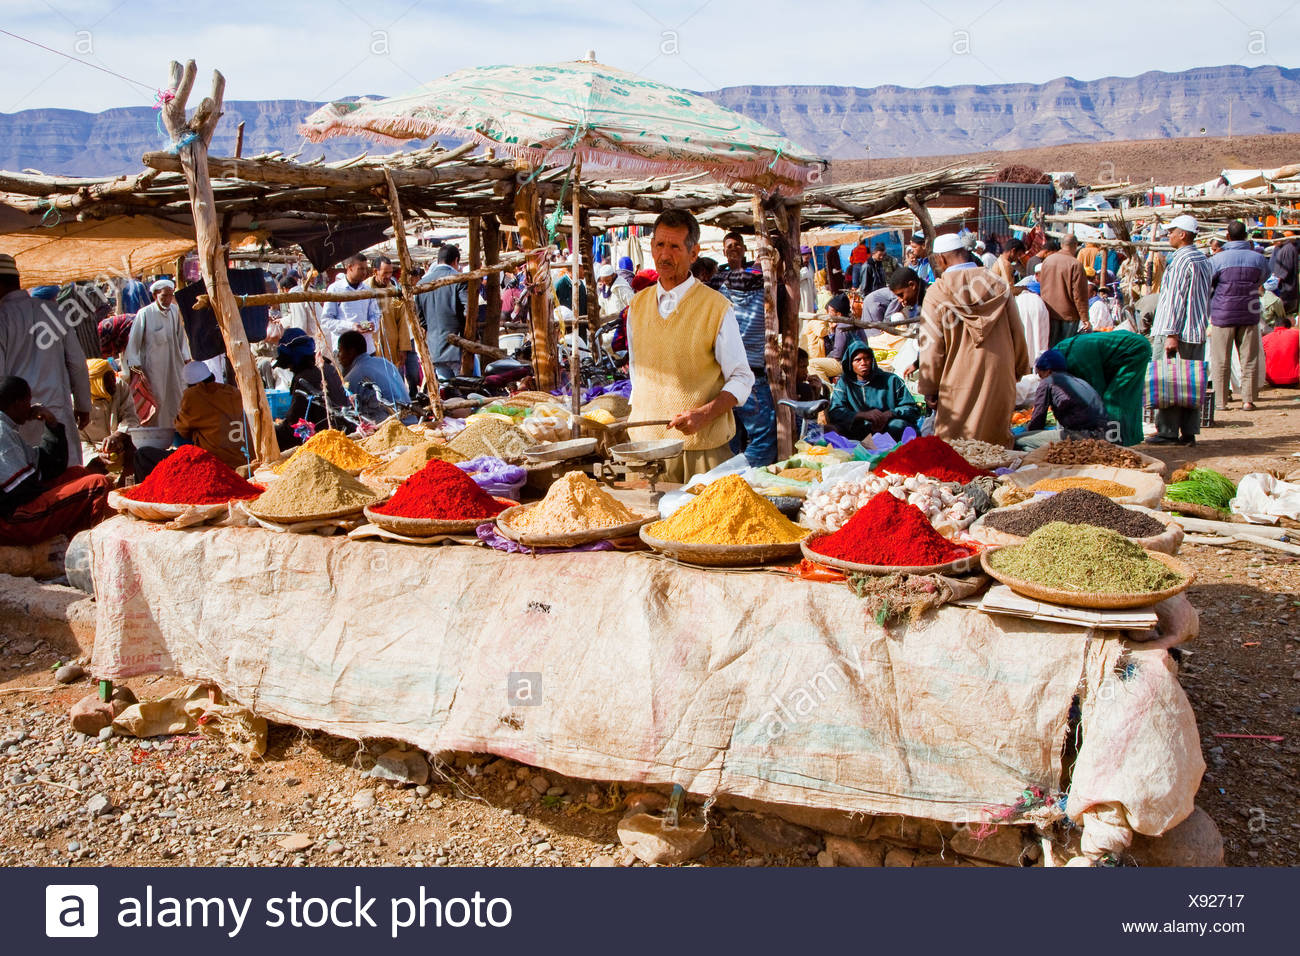 Men wearing Djellabas, traditional robes, with herbs and spices on the market or souq, Tinezouline, Draa valley, Morocco, Africa Stock Photo